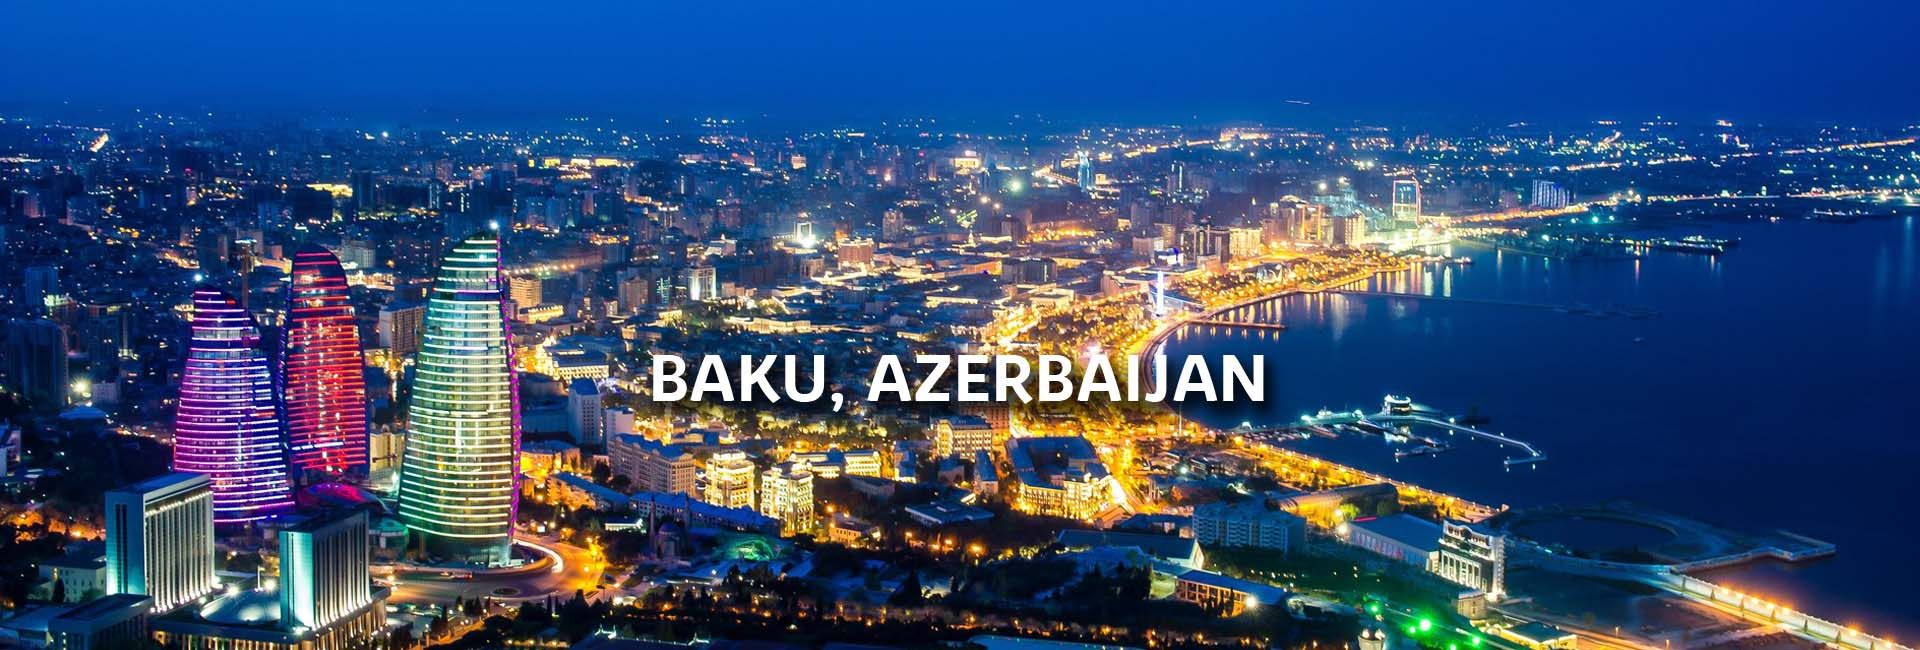 Azerbaijan Tour Packages from Dubai